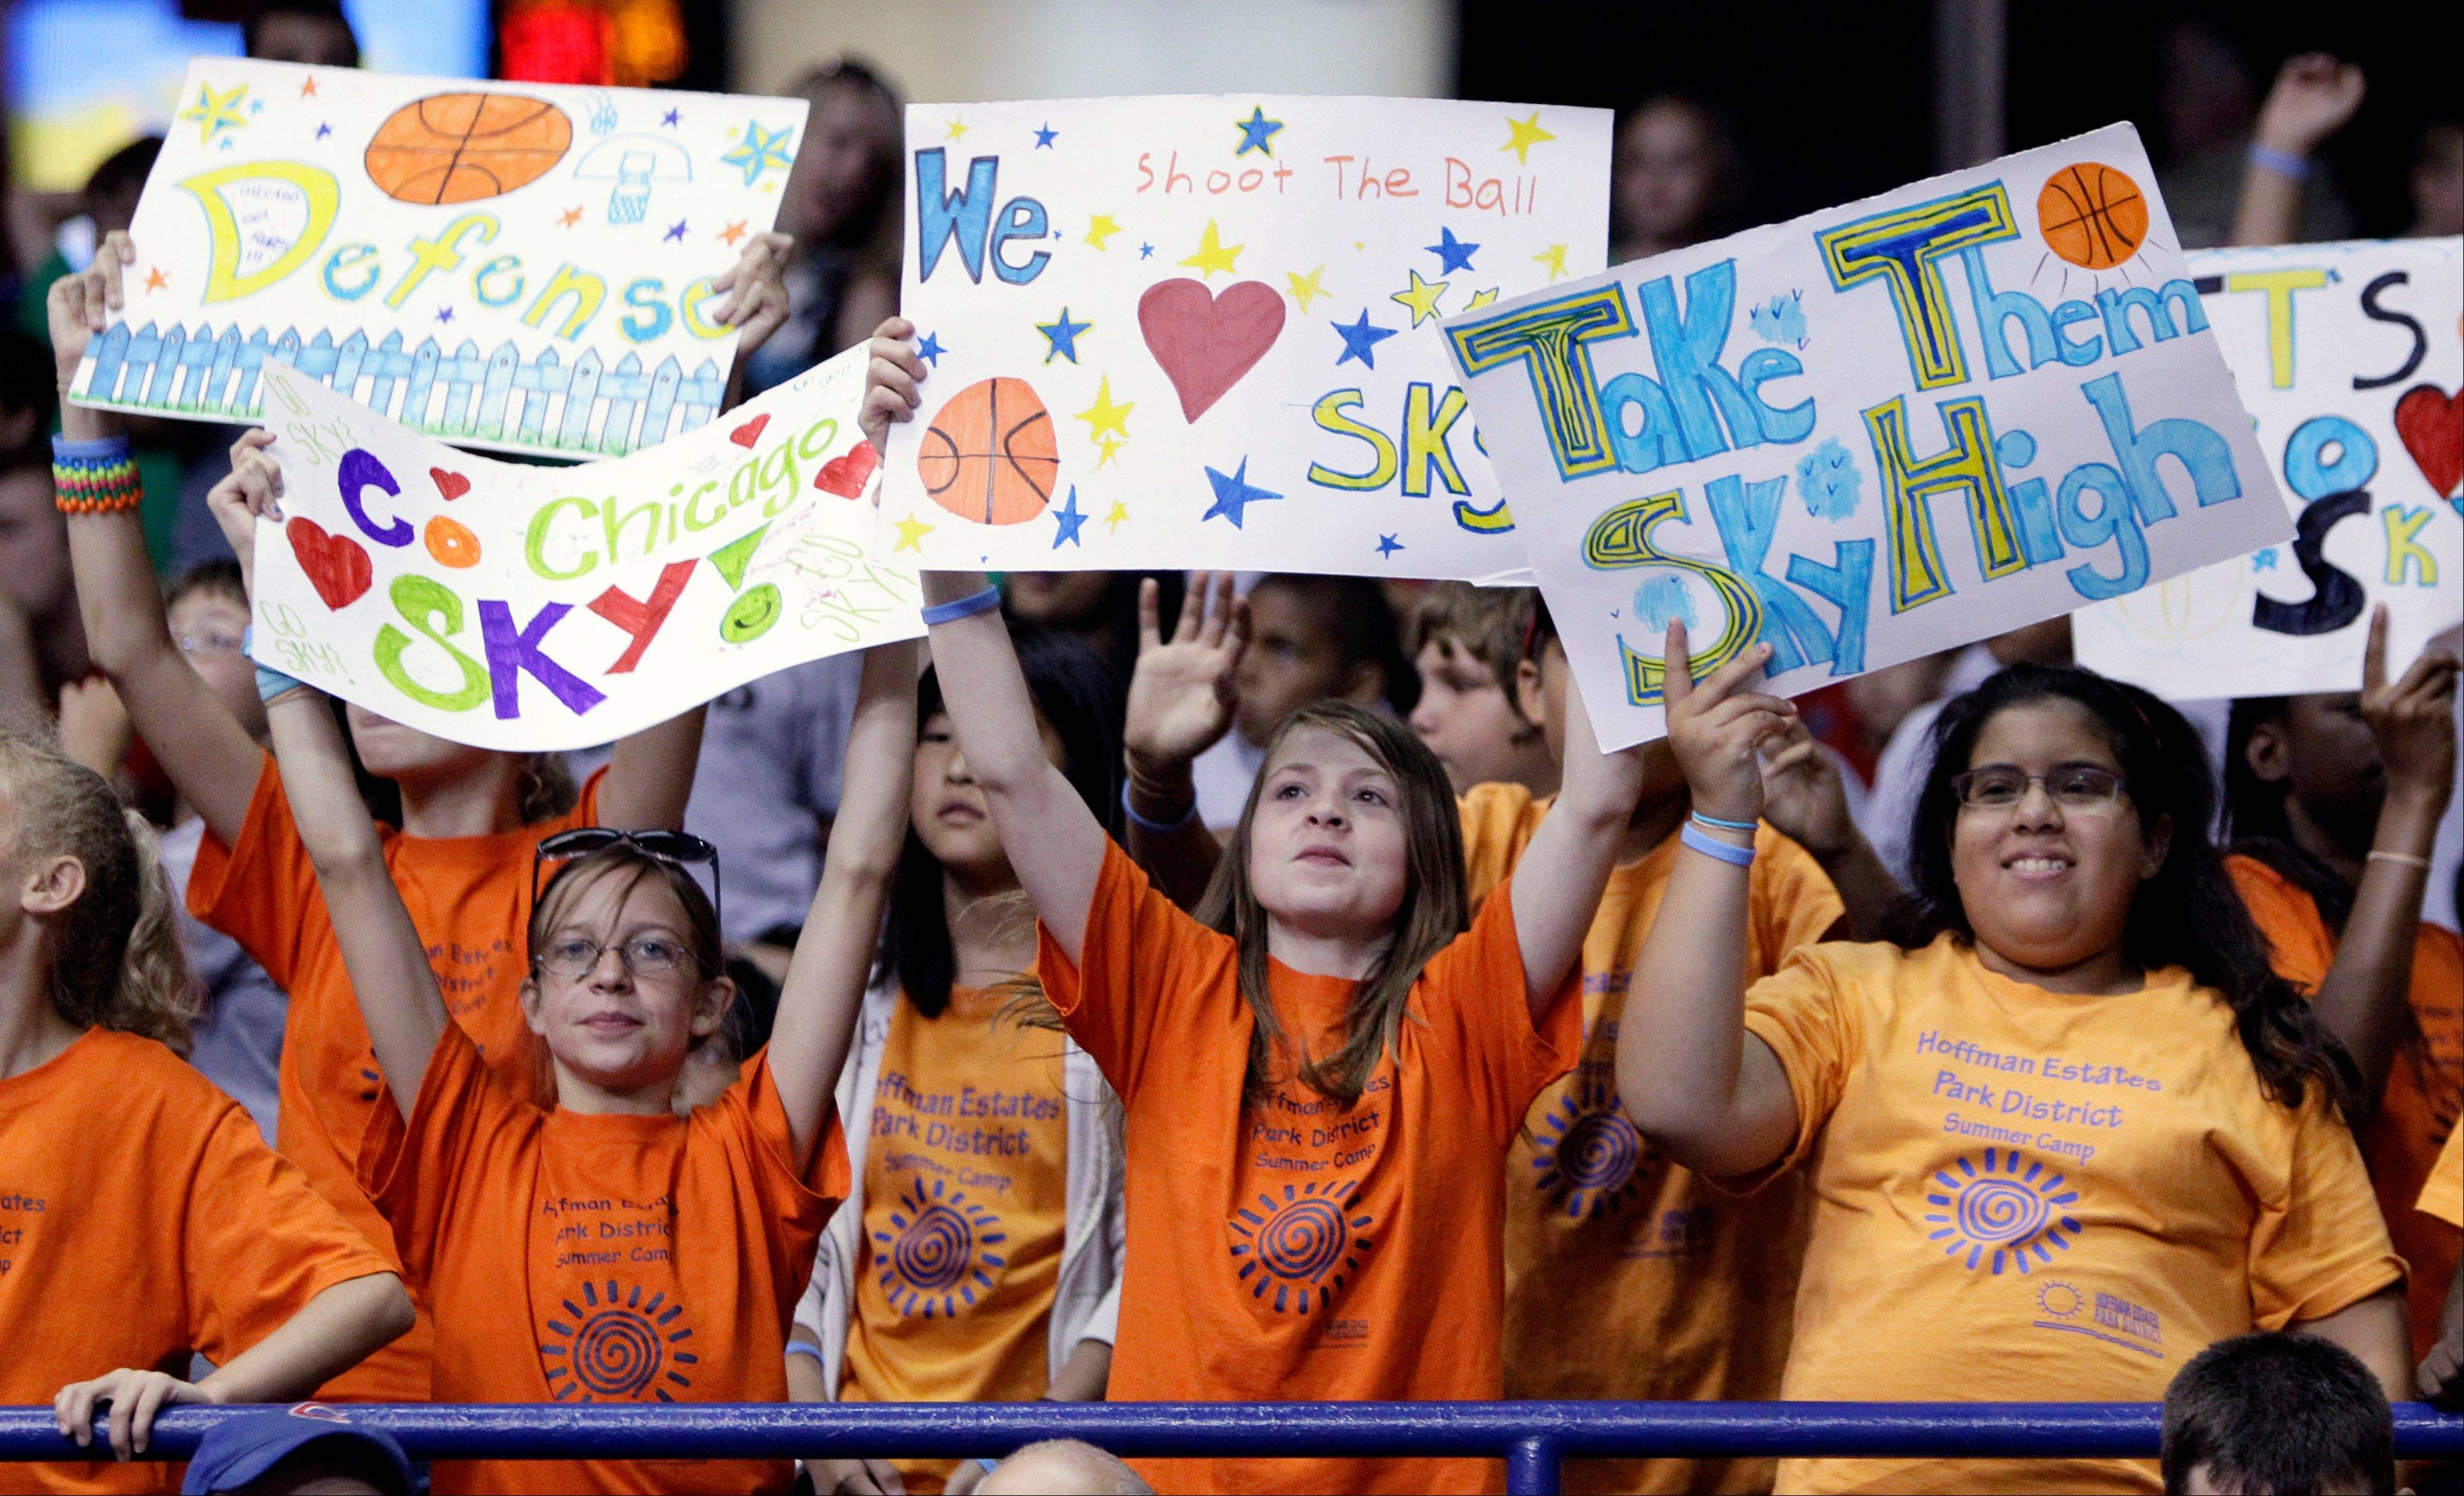 Fans hold signs as they watch the Chicago Sky battle the Tulsa Shock at the Allstate Arena on Wednesday.